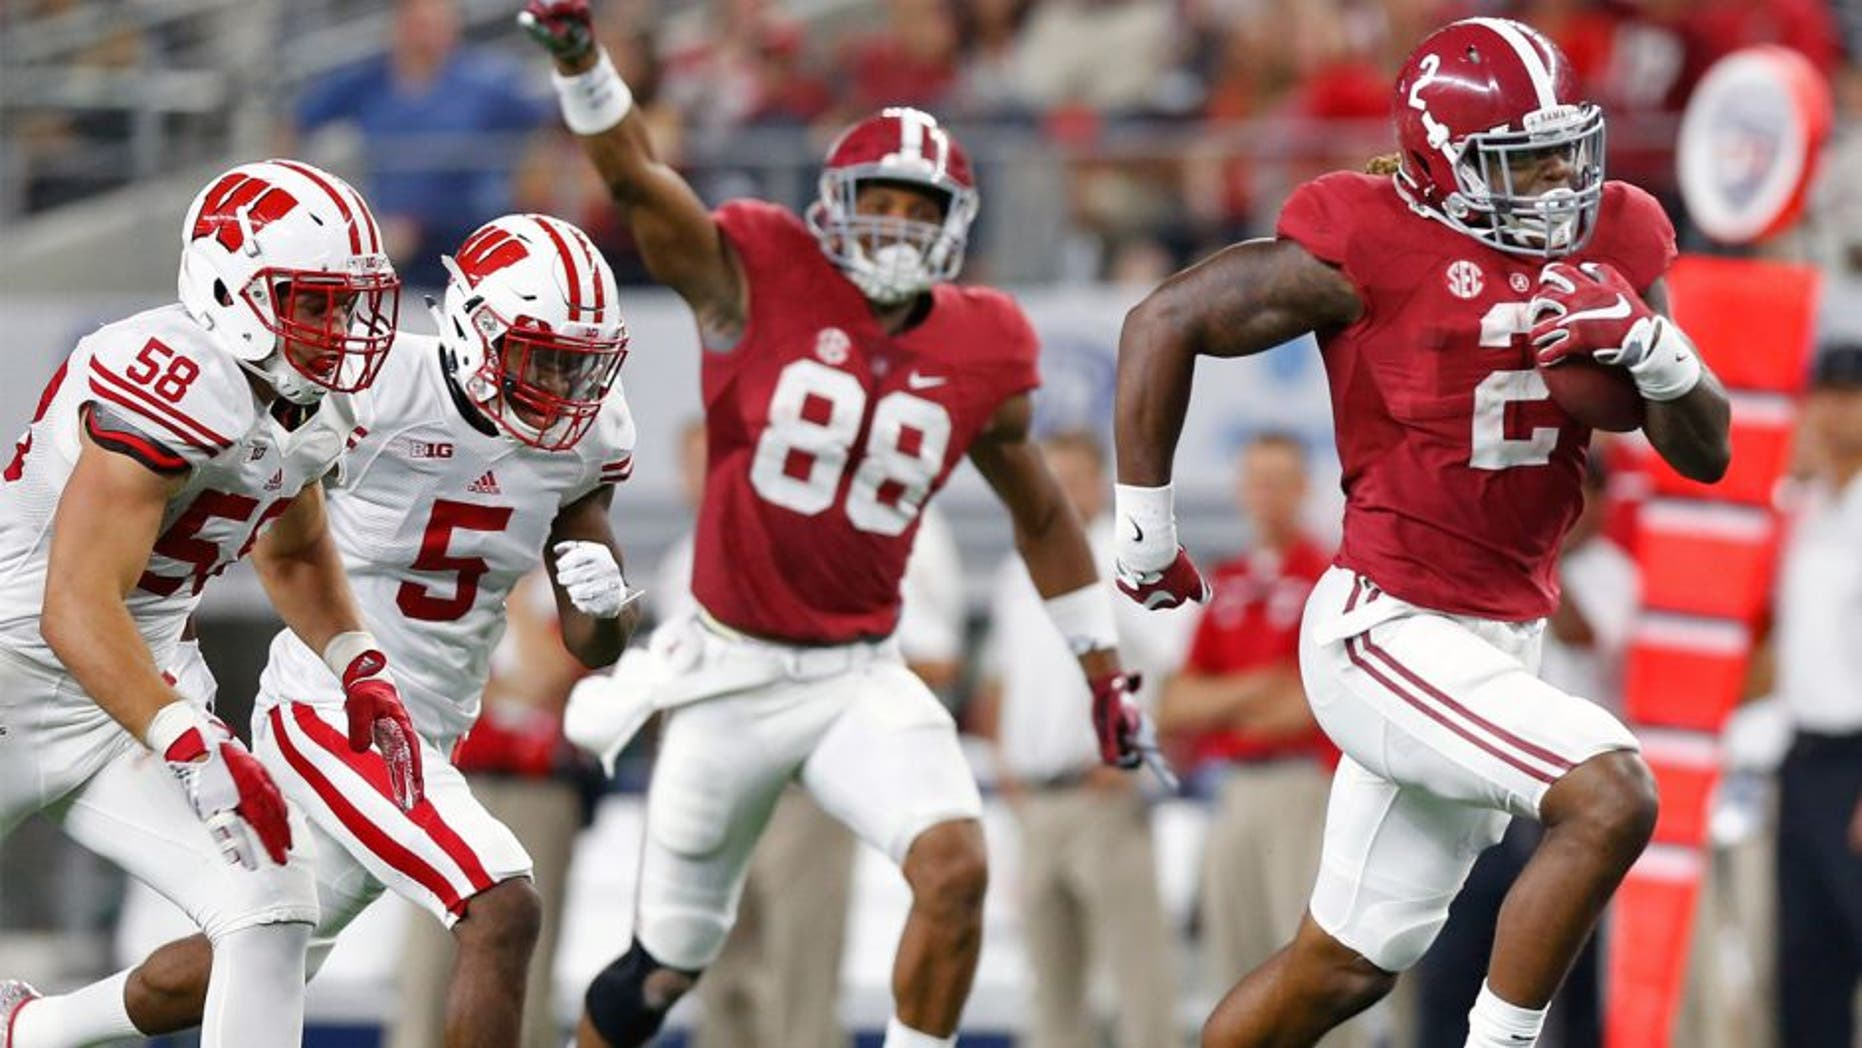 Sep 5, 2015; Arlington, TX, USA; Alabama Crimson Tide running back Derrick Henry (2) runs with the ball for a third quarter touchdown against Wisconsin Badgers linebacker Joe Schobert (58) and cornerback Darius Hillary (5) as Alabama Crimson Tide receiver O.J. Howard (88) celebrates at AT&T Stadium. Mandatory Credit: Matthew Emmons-USA TODAY Sports